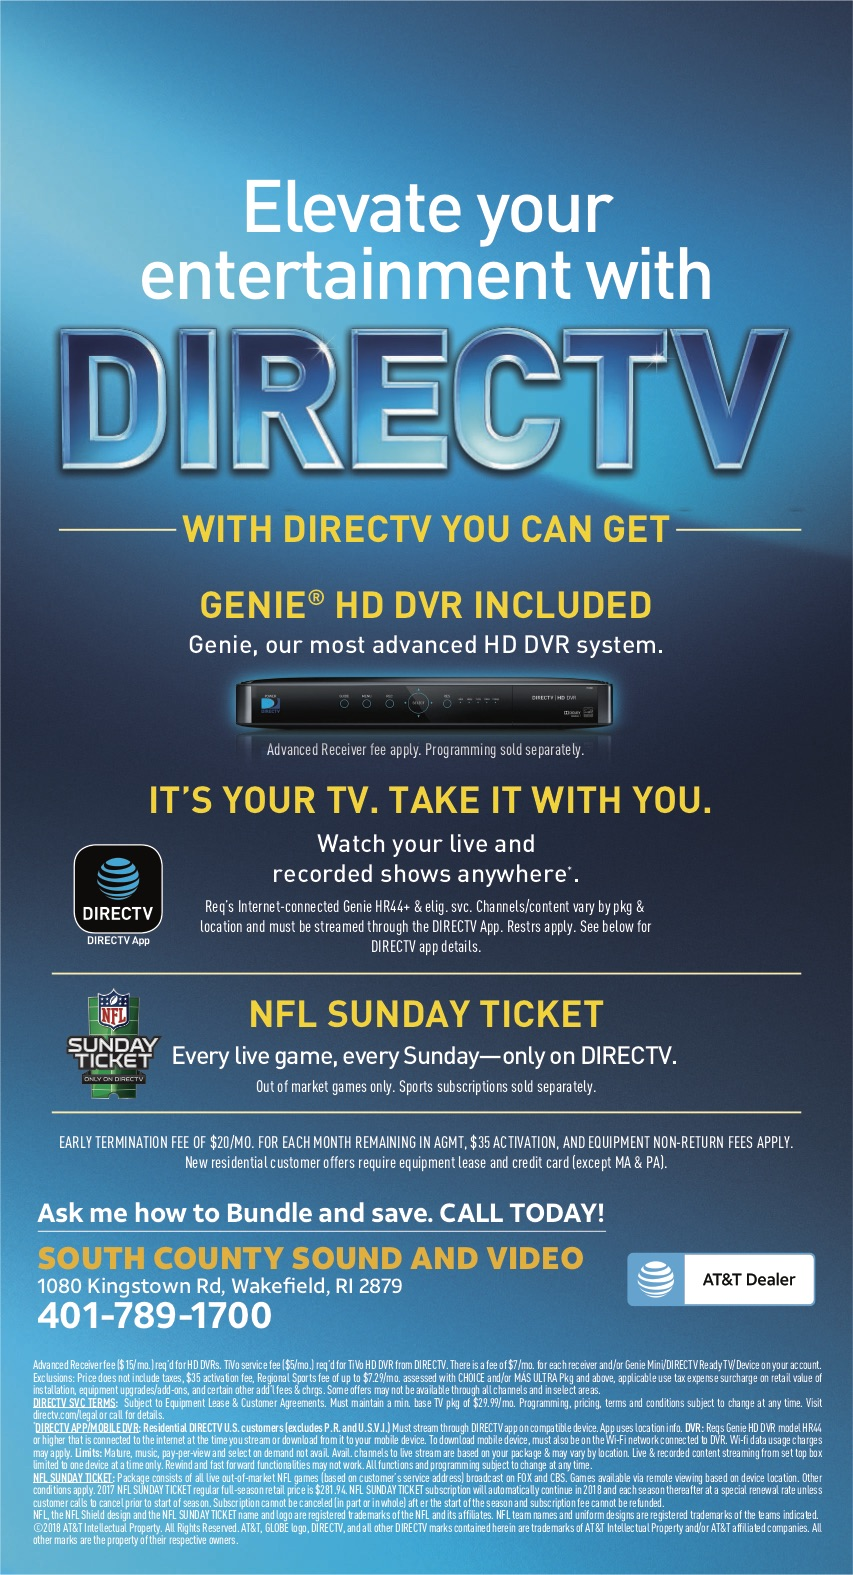 If you live in East Greenwich, North Kingstown, Warwick, West Warwick, Exeter, West Greenwich, Jamestown, South Kingstown, Westerly or Narragansett and are looking to get out of cable and into Directv, Call SCSV.